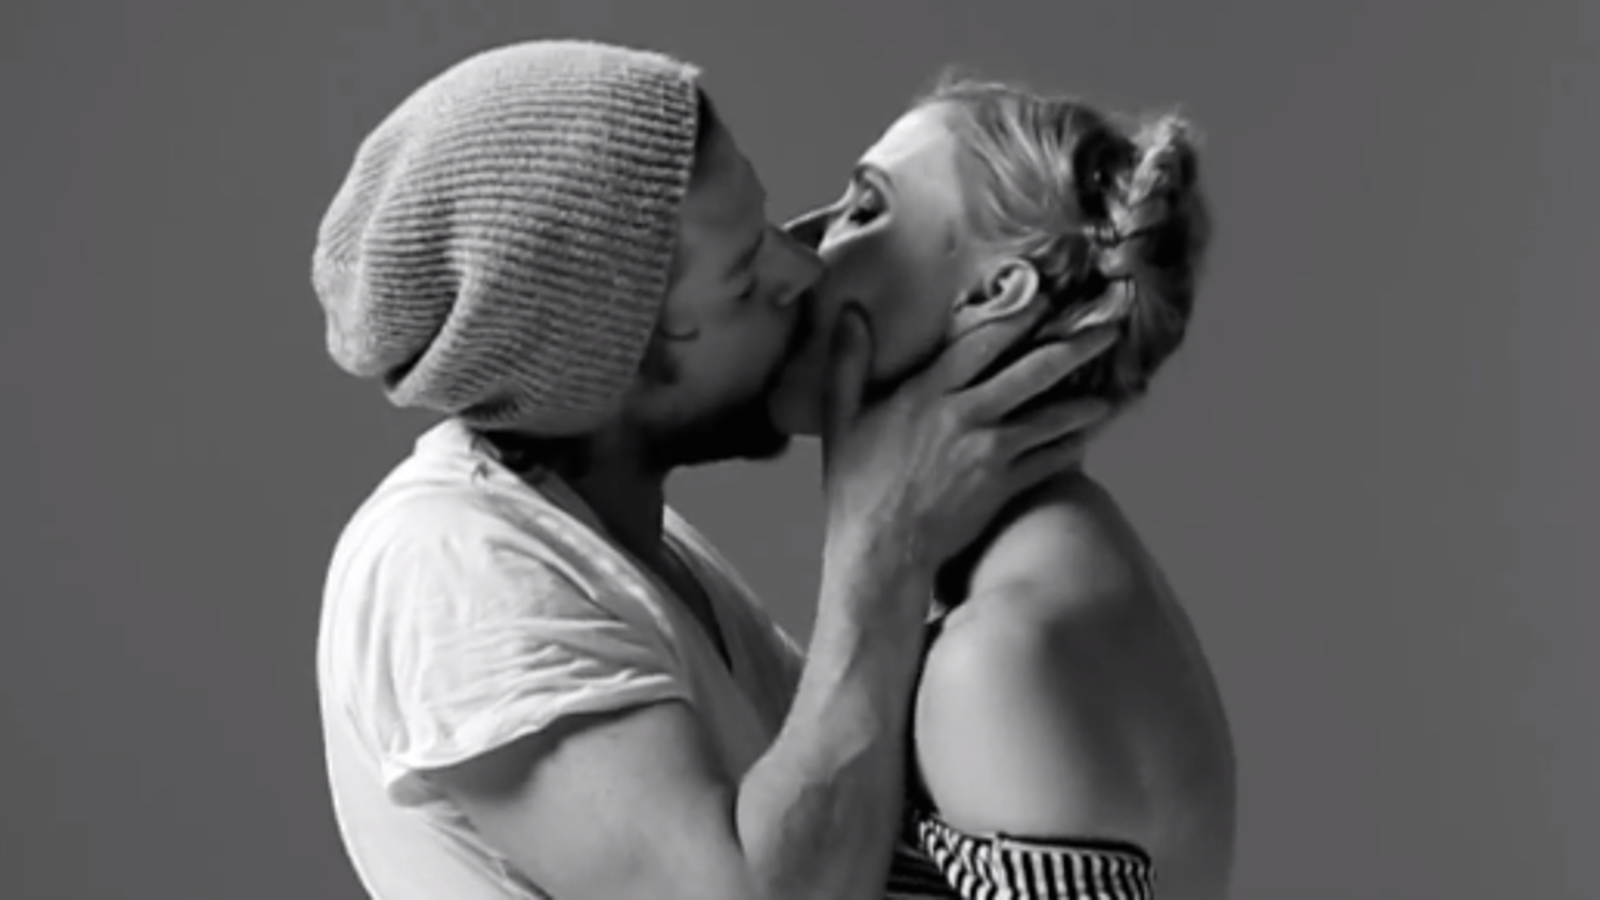 Watching complete strangers kiss for the first time is really beautiful